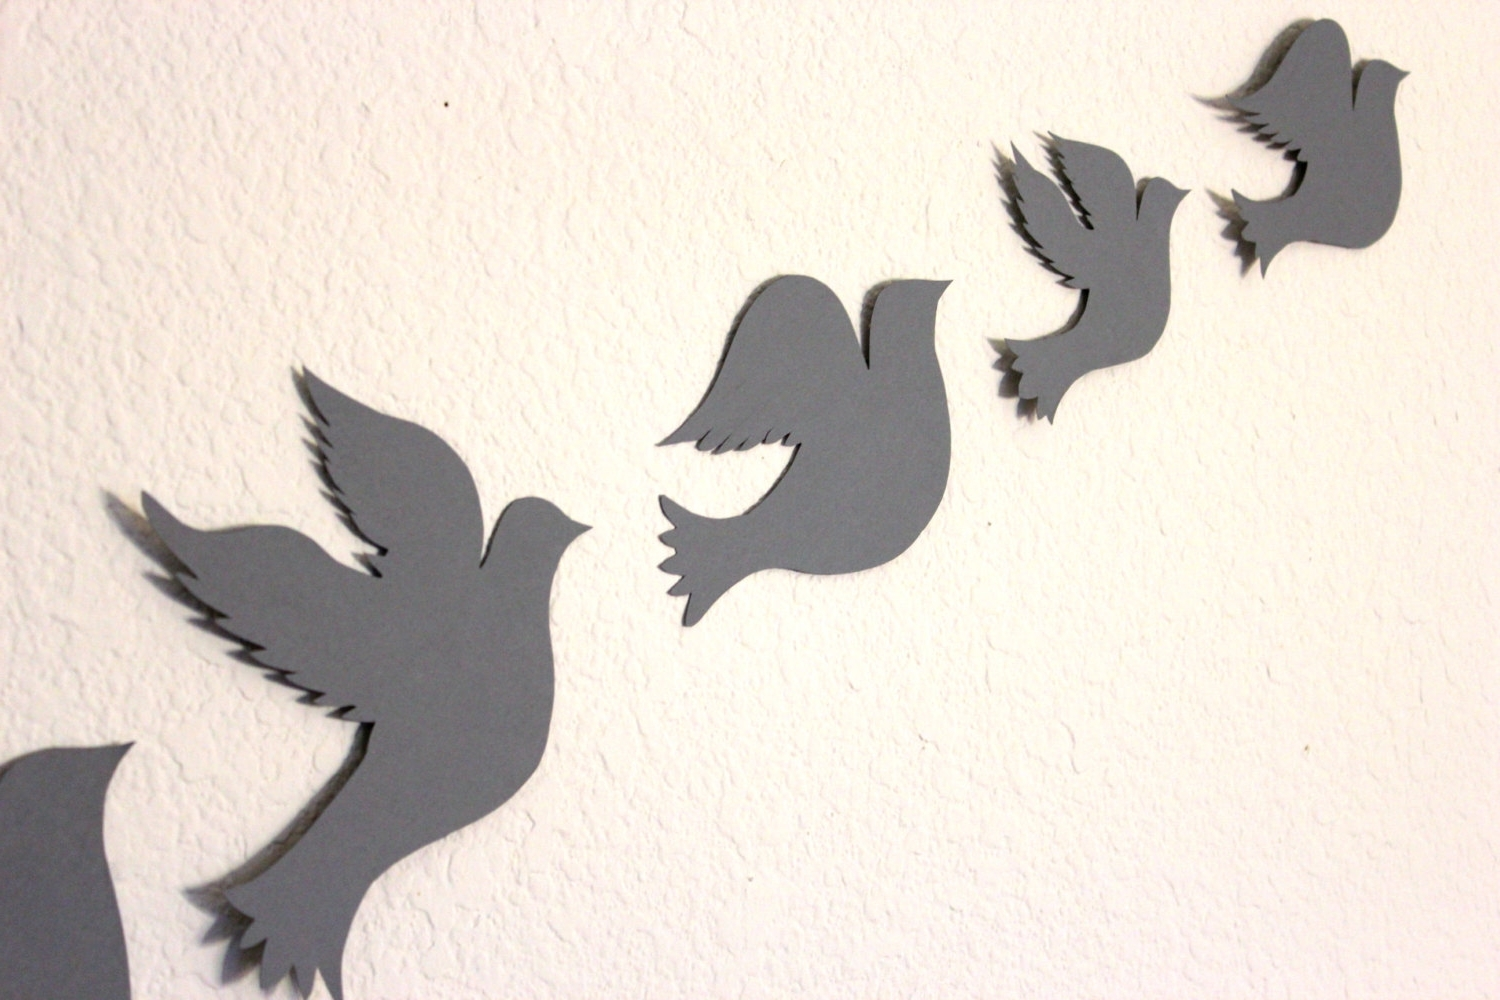 Fashionable 3D Birds Wall Art Popular Items For 3D Bird Wall Art On Etsy, 3D Inside 3D Wall Art Etsy (View 8 of 15)